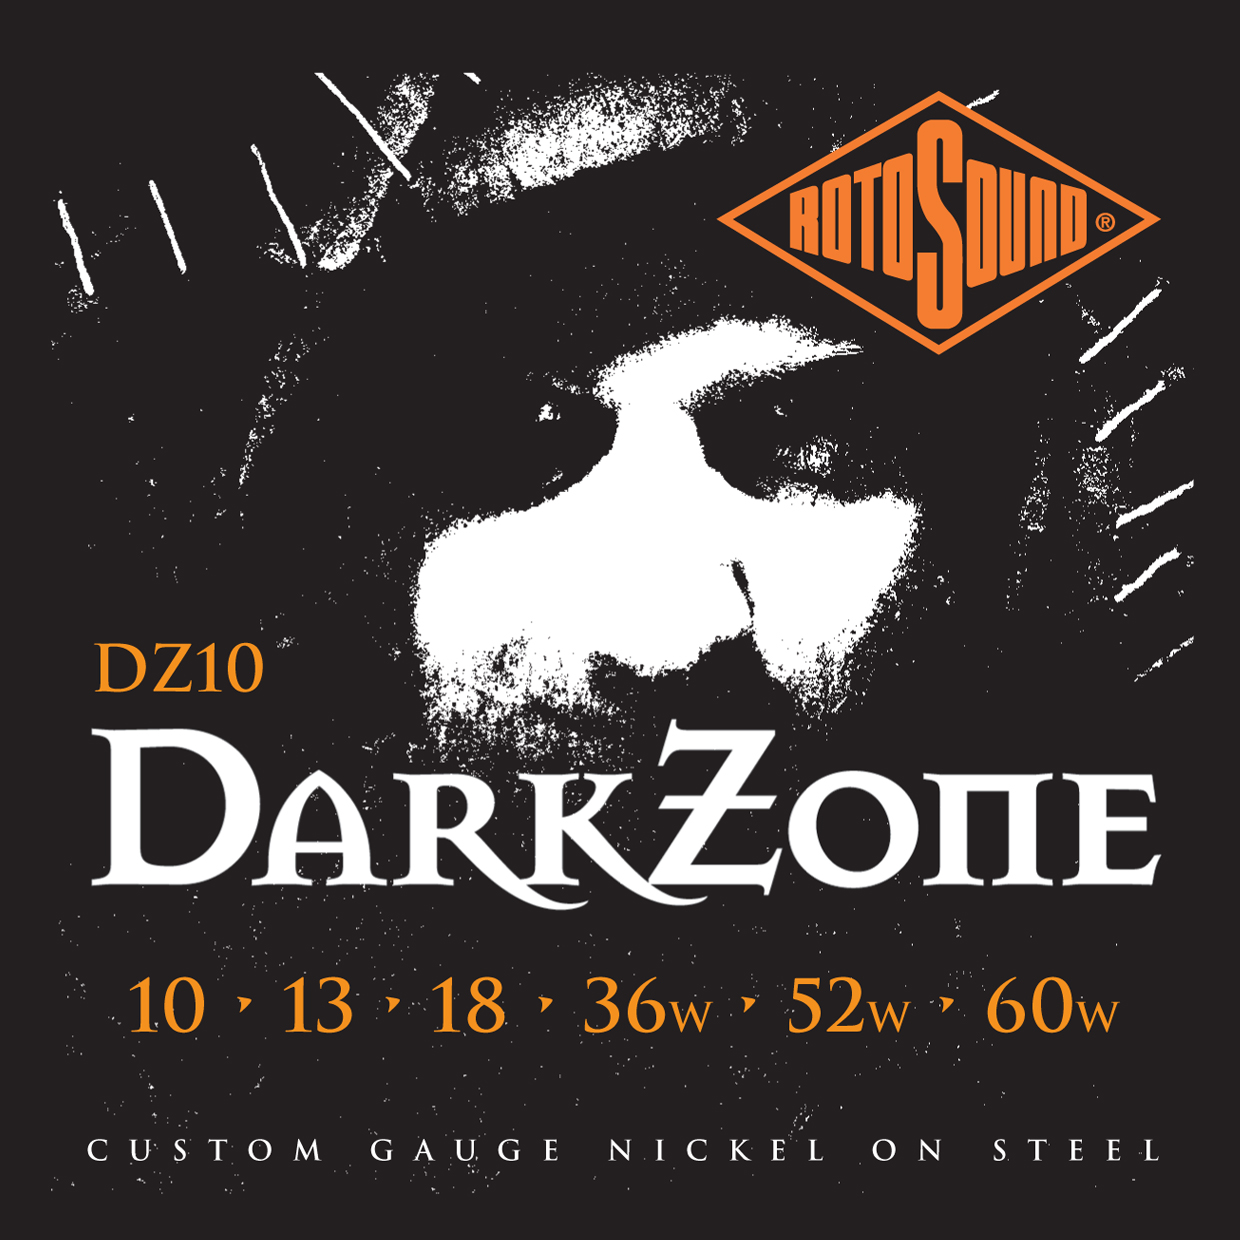 ROTOSOUND Dark Zone Limited Edition струны для электрогитары 10-60